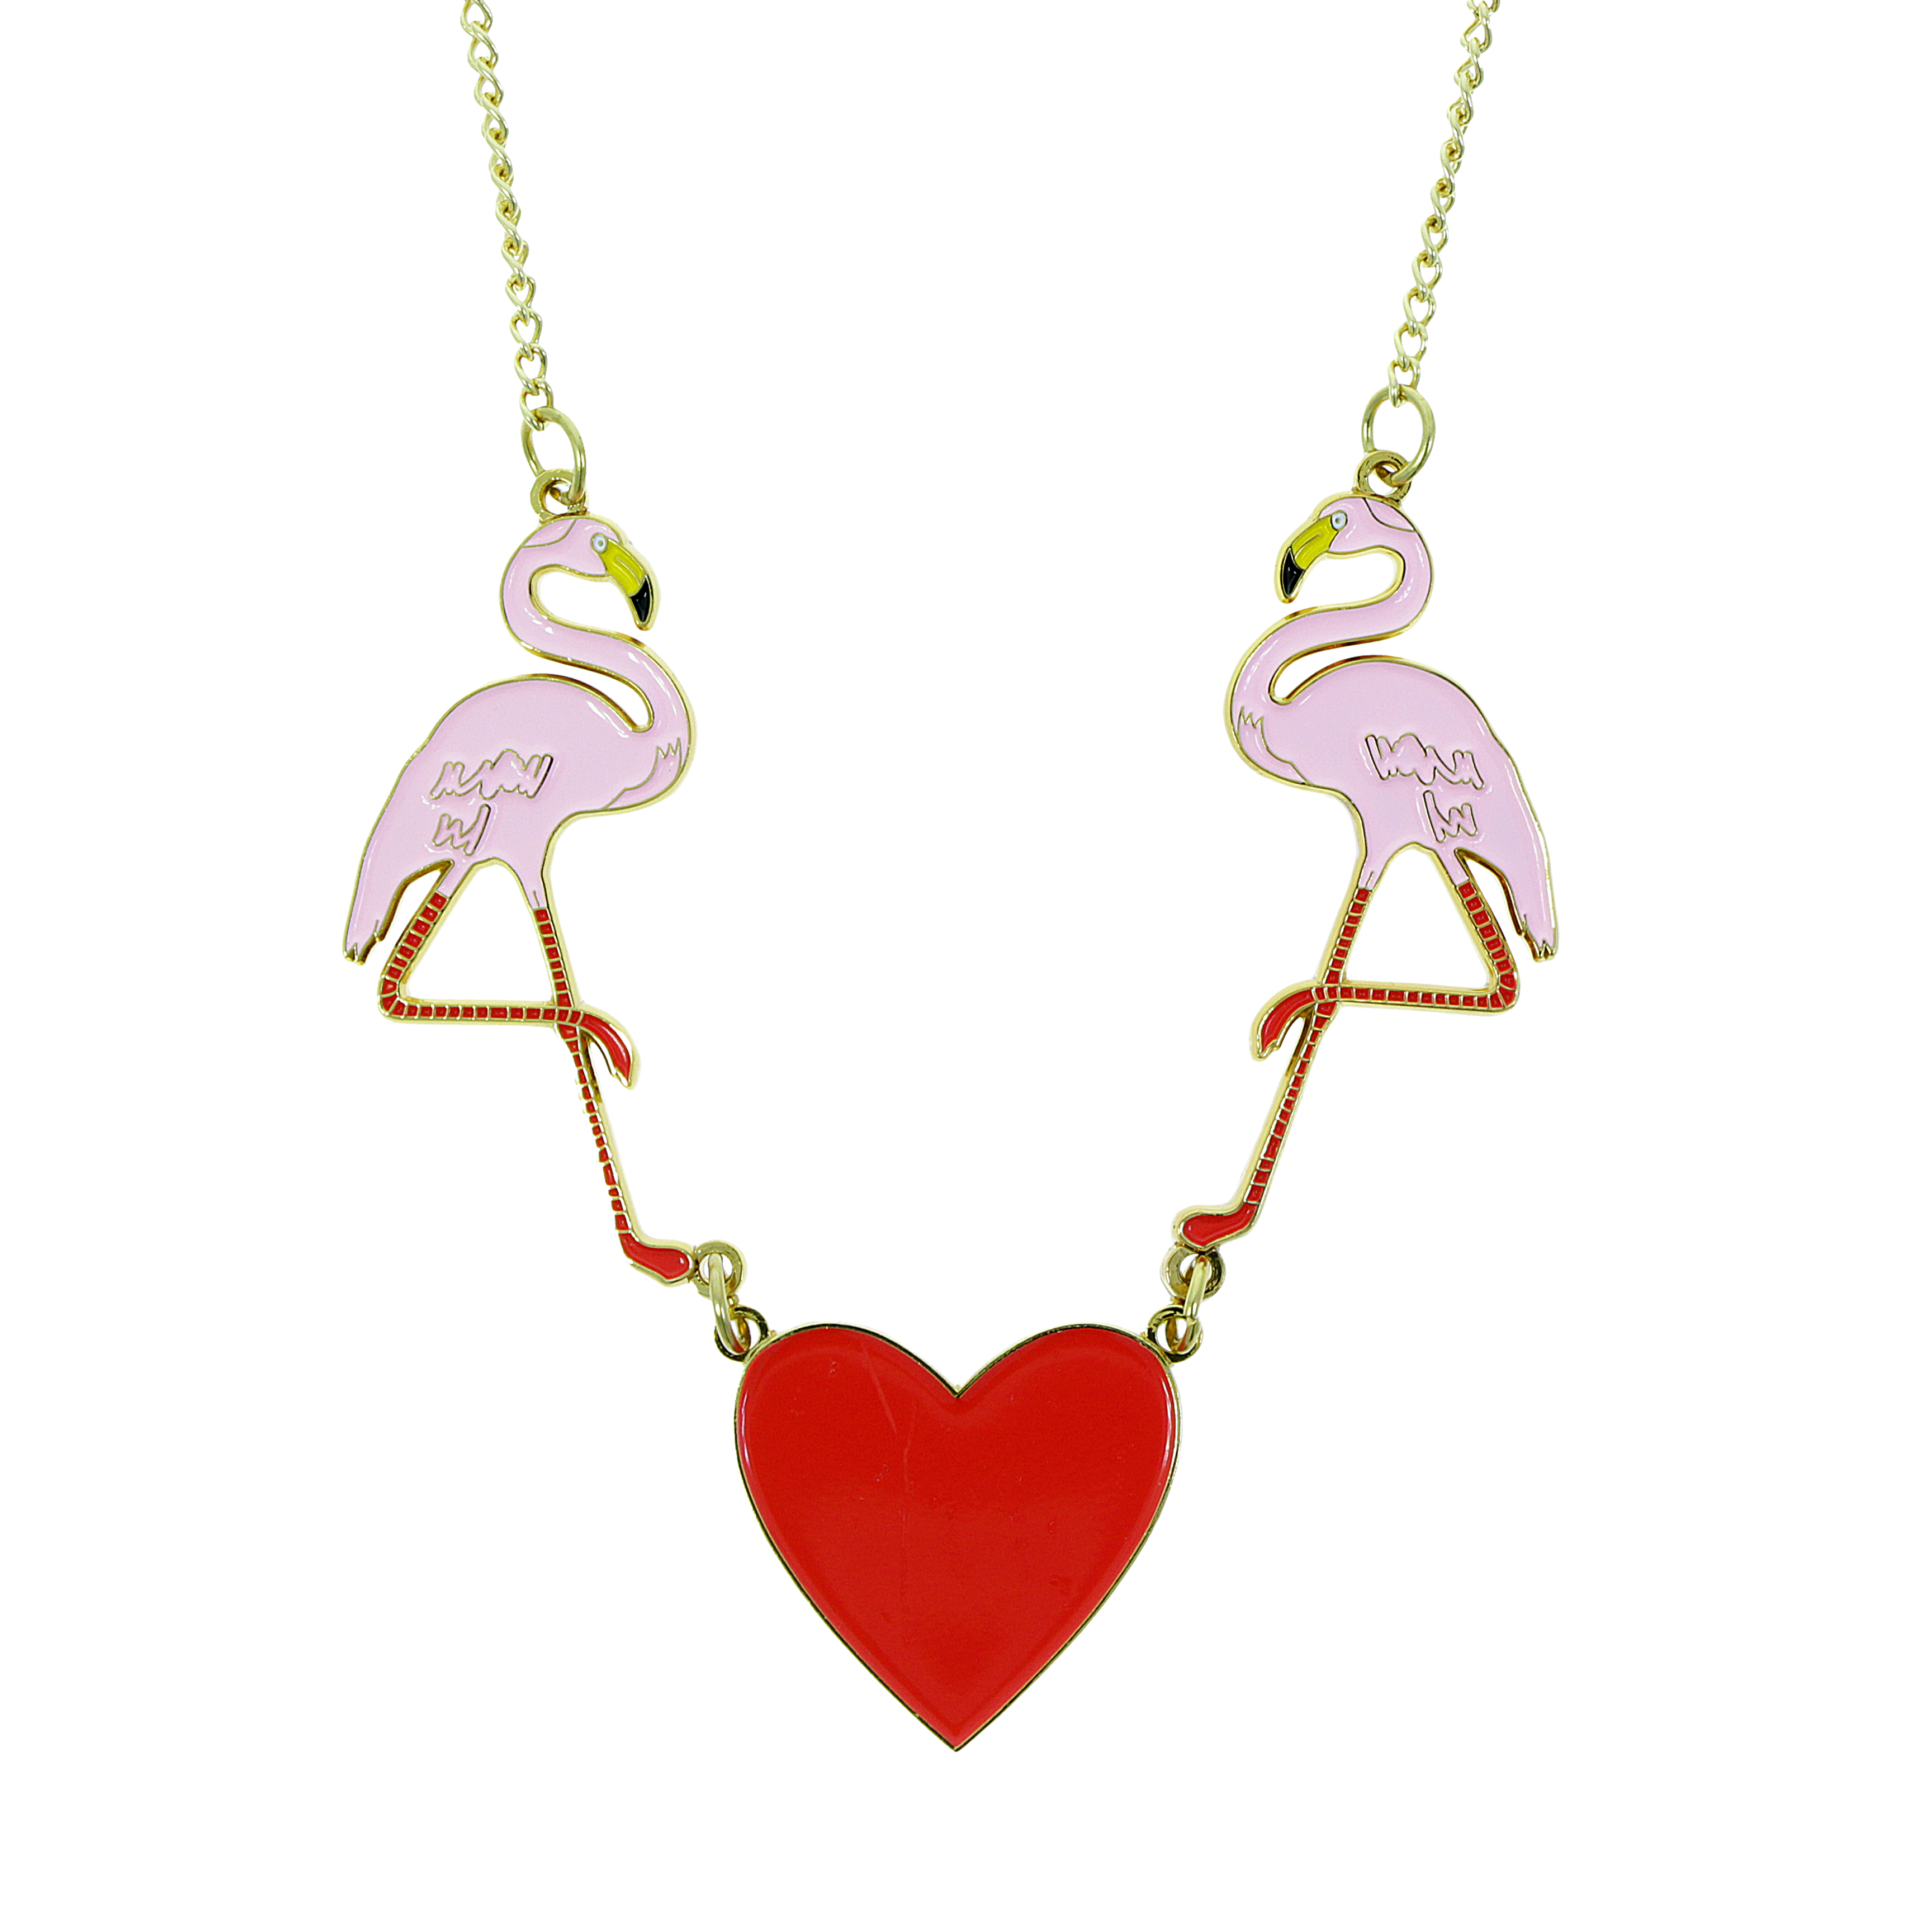 Flamingo and heart enamel necklace, £35.00 www.nhmshop.co.uk